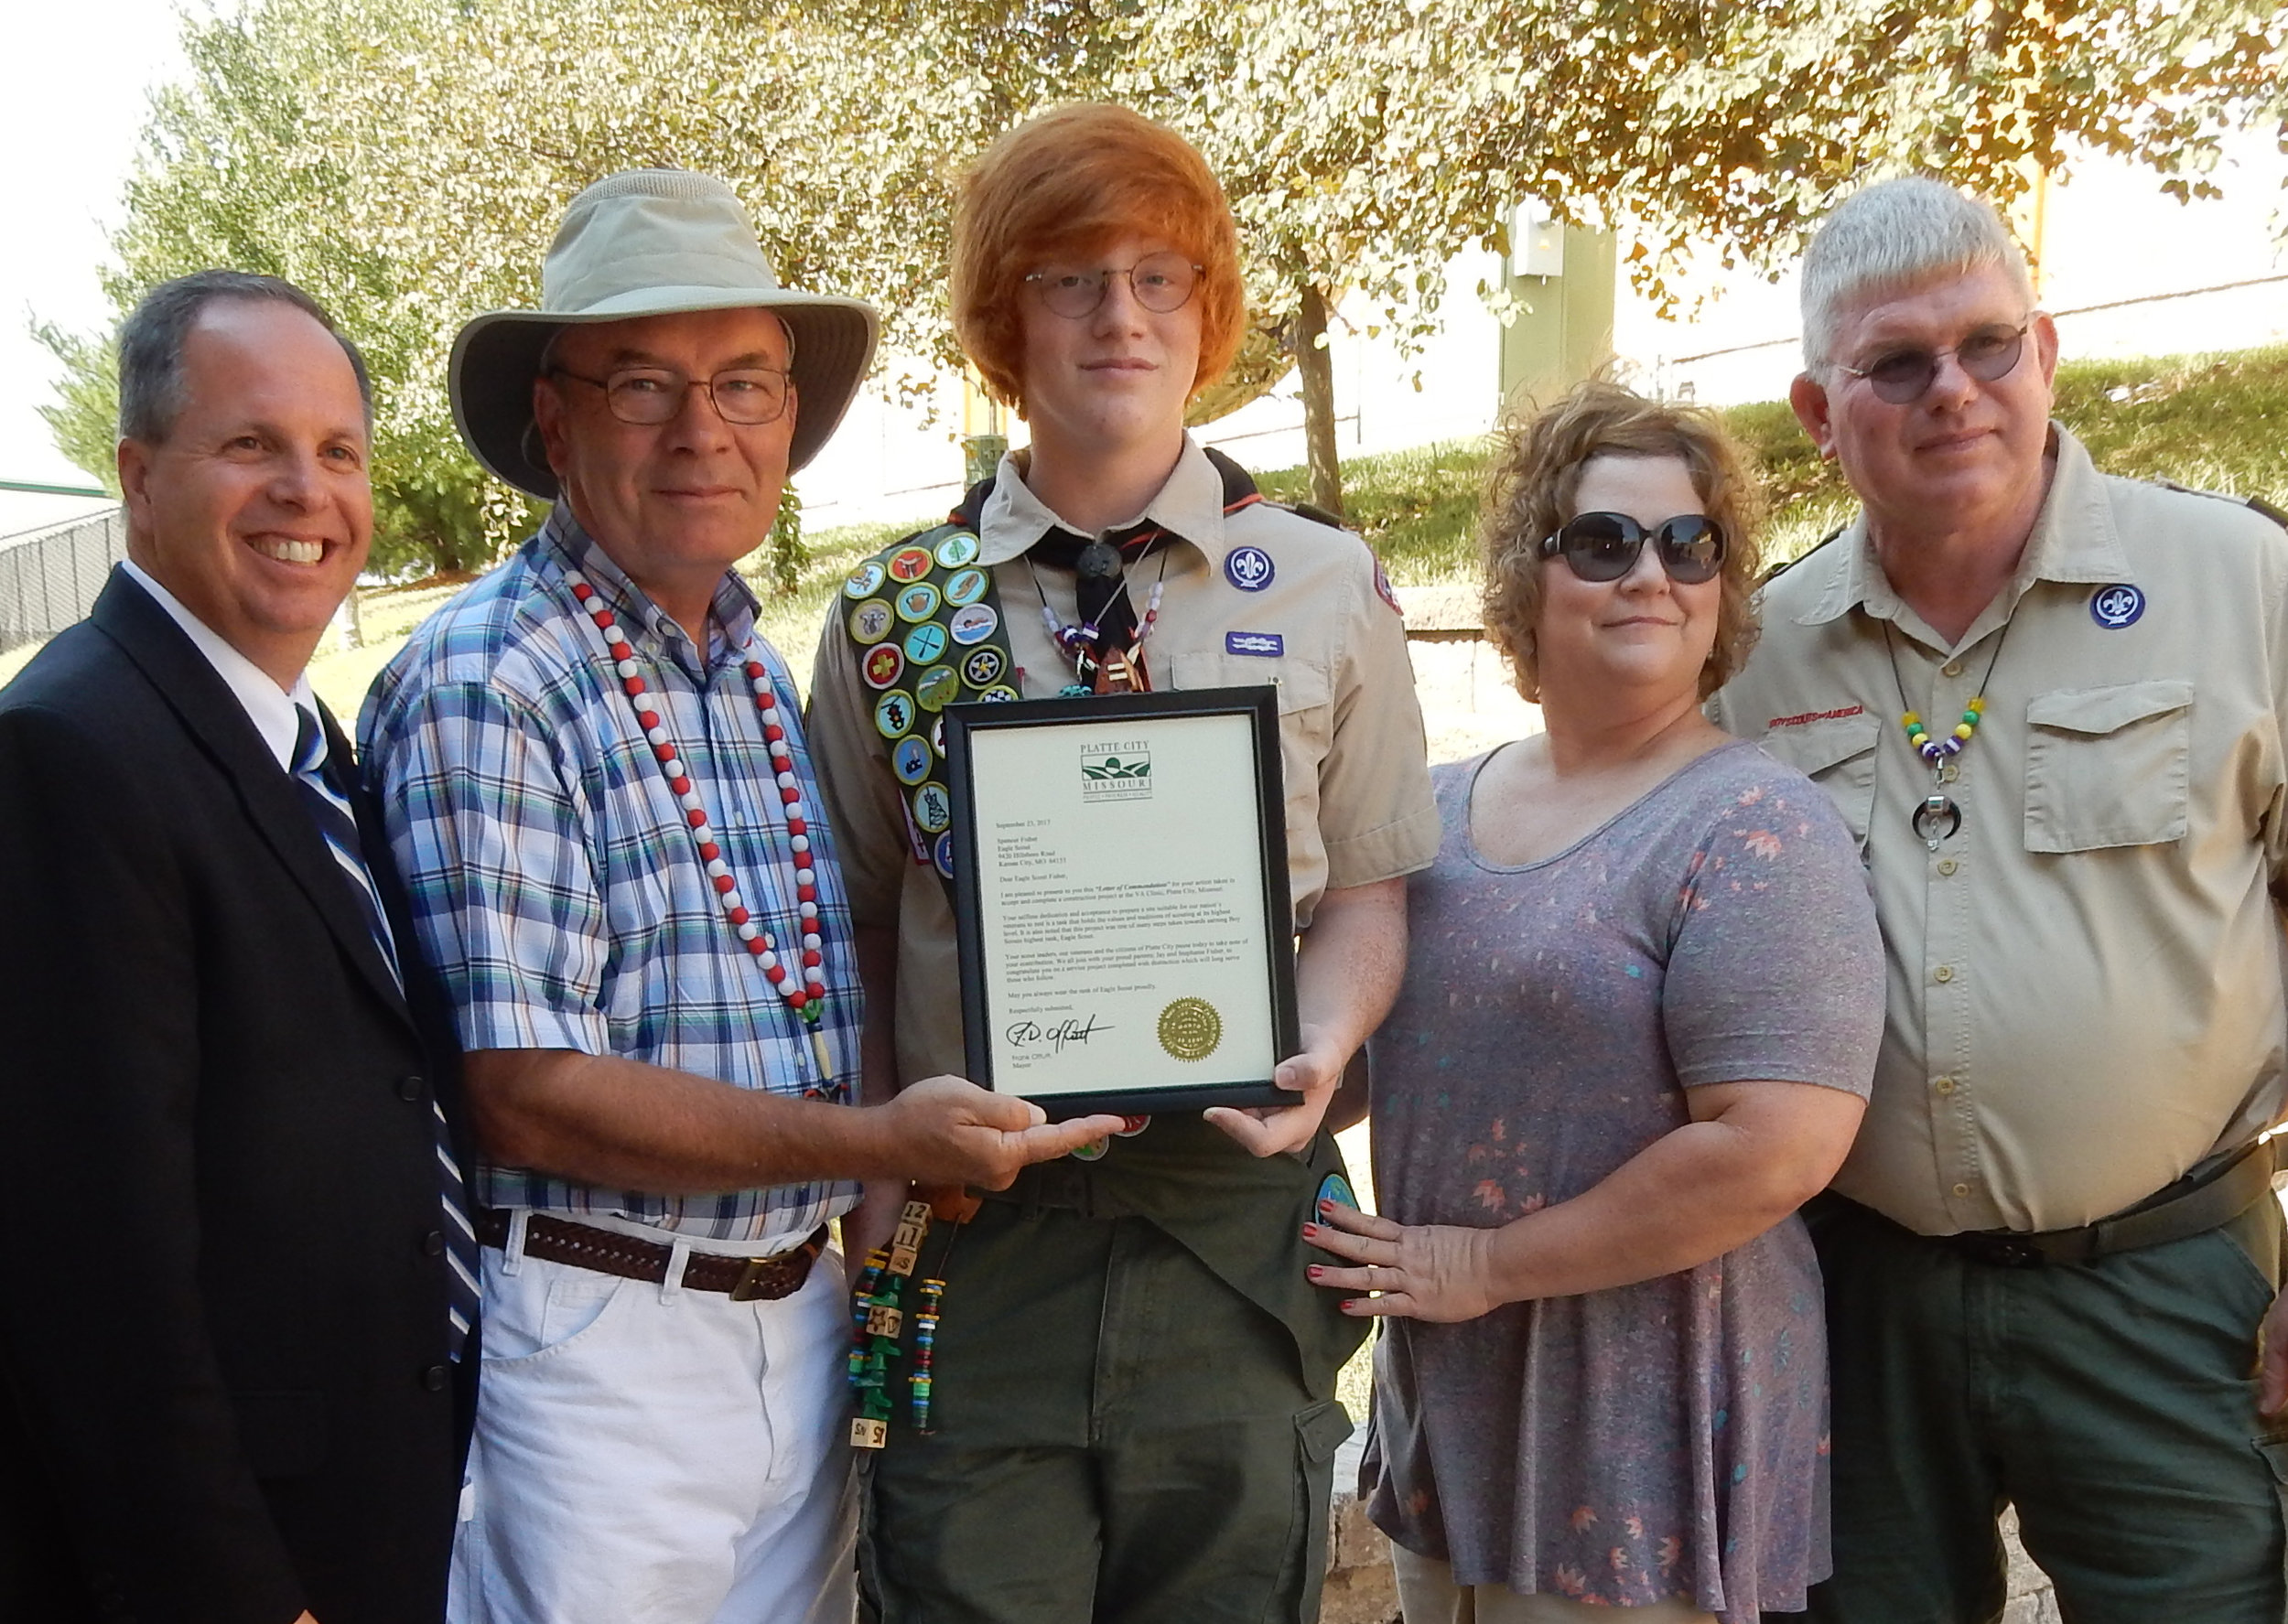 Contributed photo Spencer Fisher received his Eagle Scout merit badge for helping contstruct a patio and sitting area at the VA Clinic in Platte City. On Saturday, Sept. 23, Fisher received a letter of commendation from Platte City mayor Frank Offutt during a small dedication ceremony. Pictured here, from left, are VA director Rudy Klopher, Offutt, Fisher and his parents Stephanie Fisher and Jay Fisher.